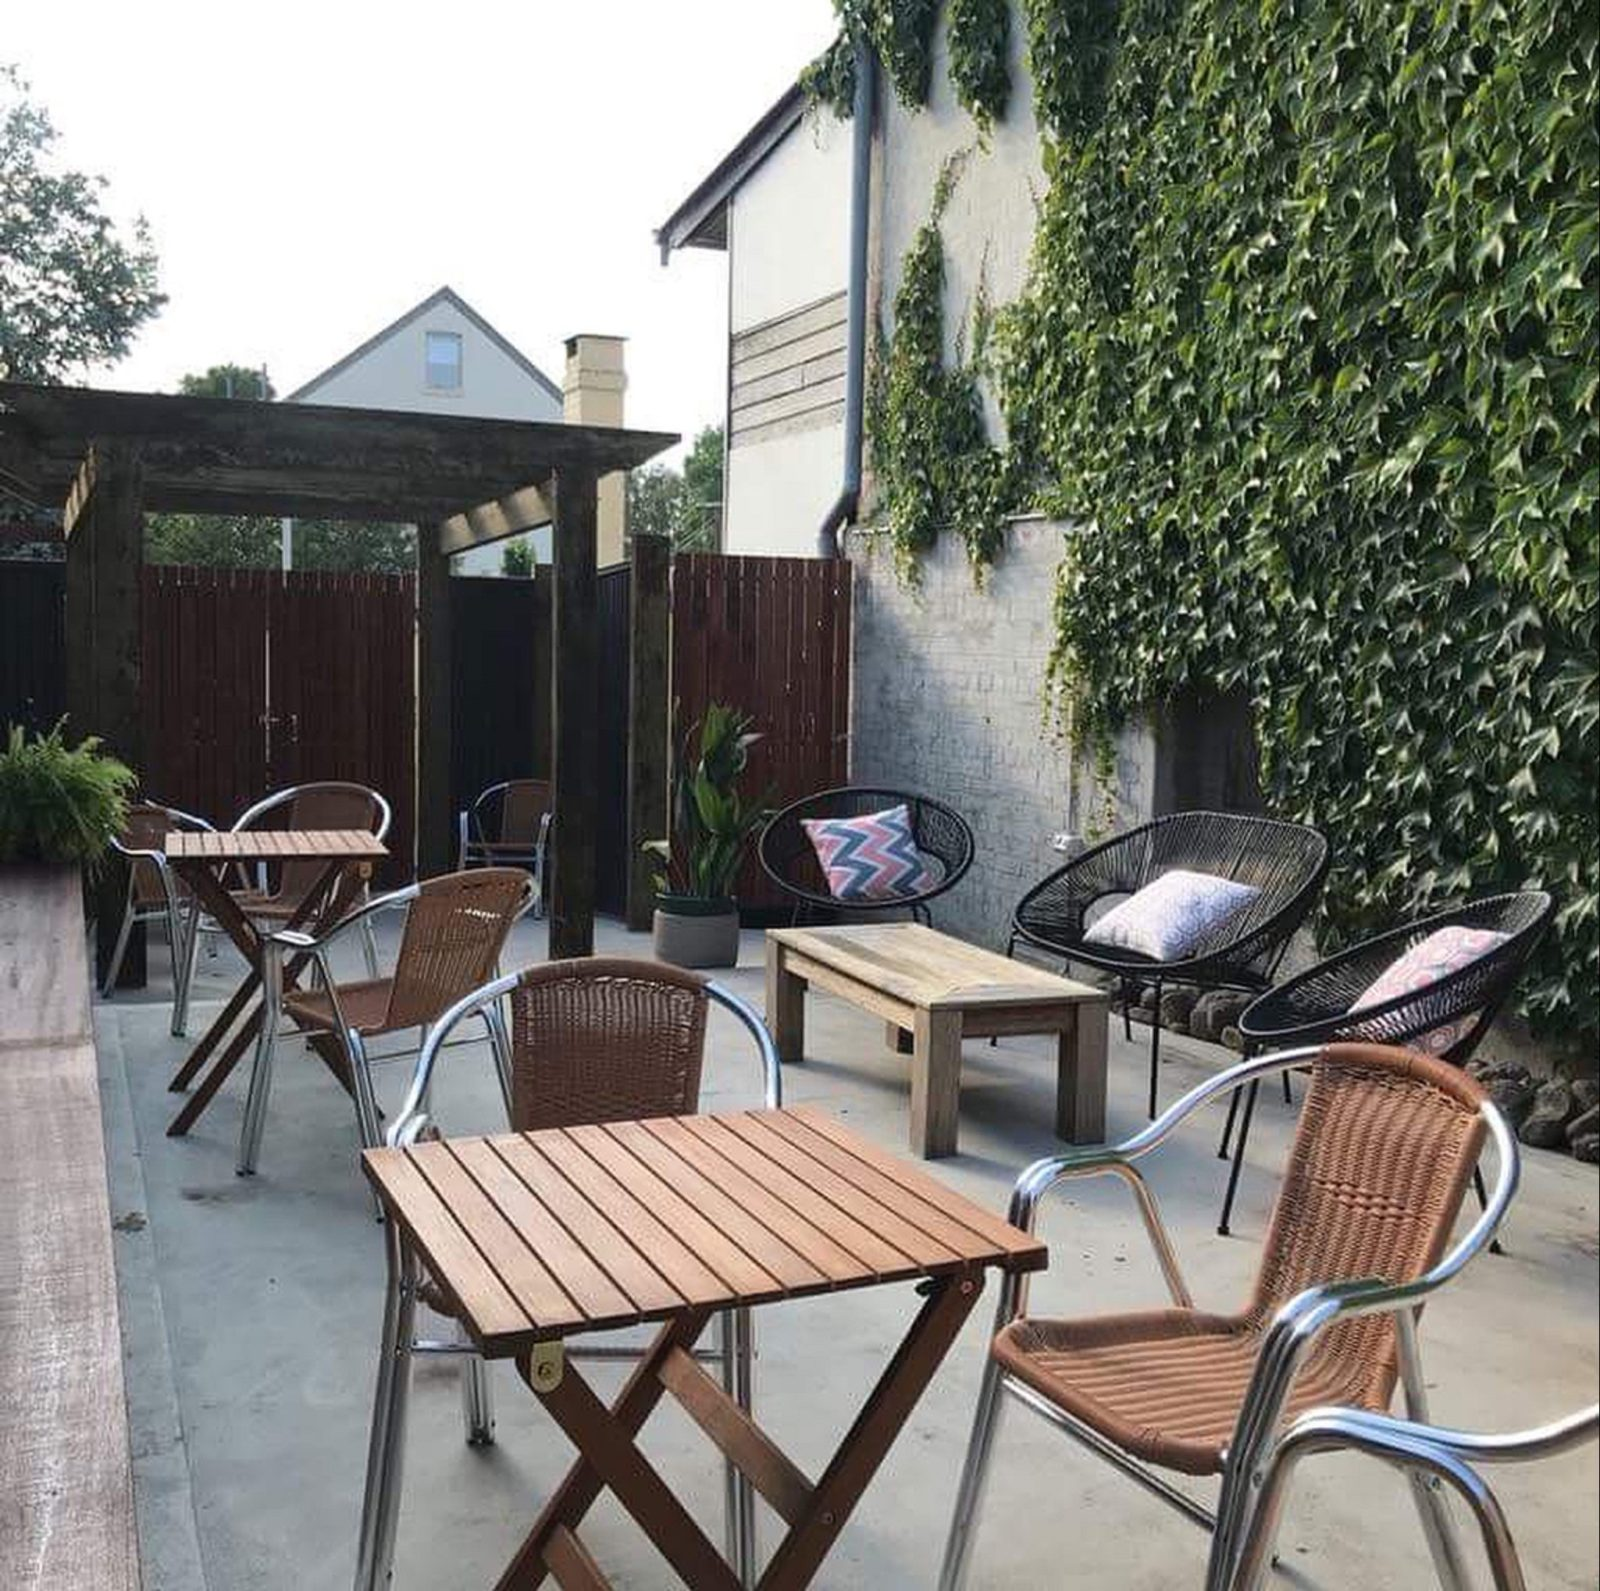 Alfresco Dining in the Courtyard at Our Place